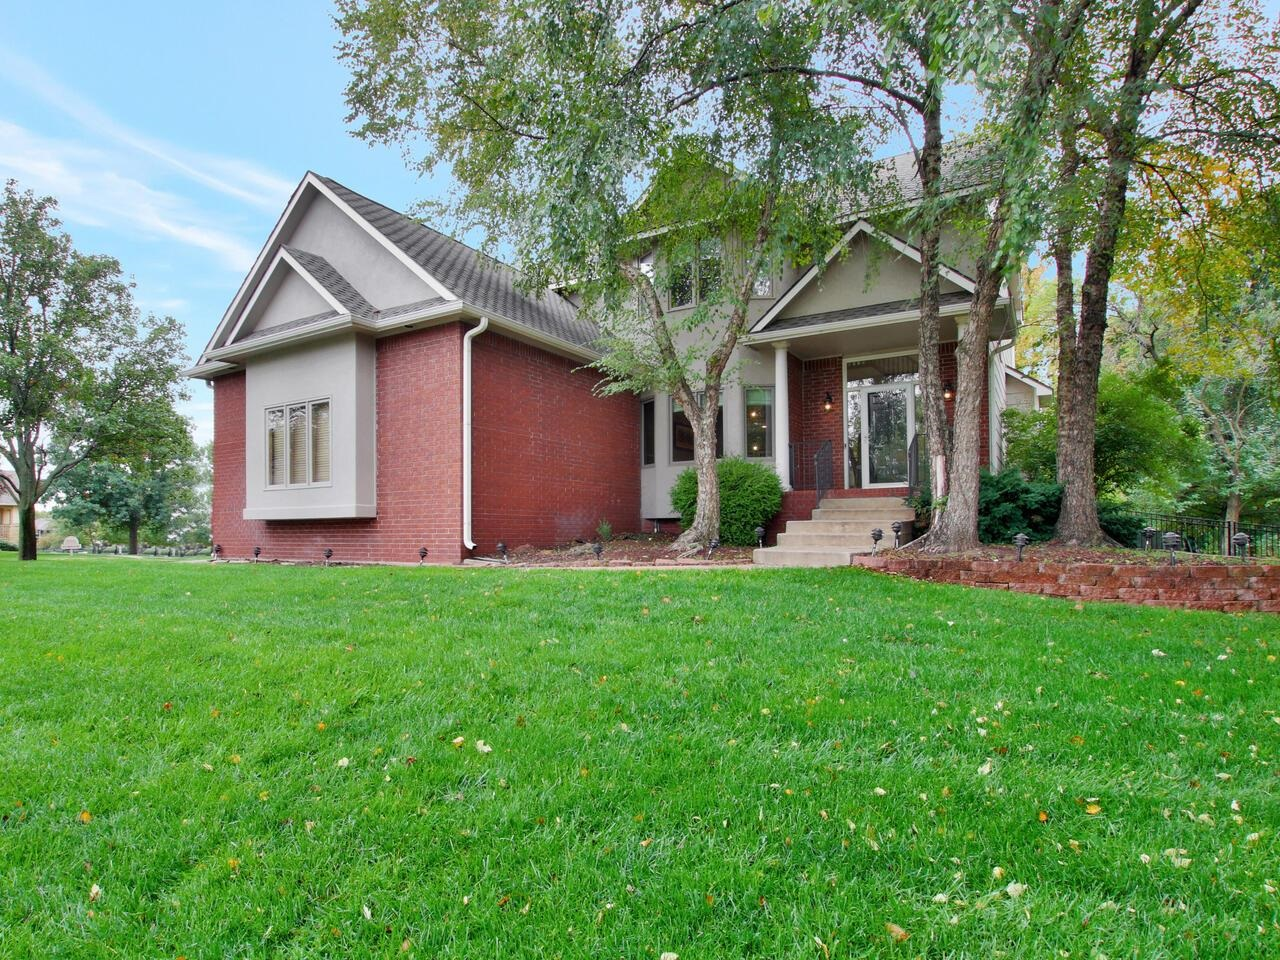 Great west side house located in Maize schools and in Hickory Creek Estates with no specials. This h